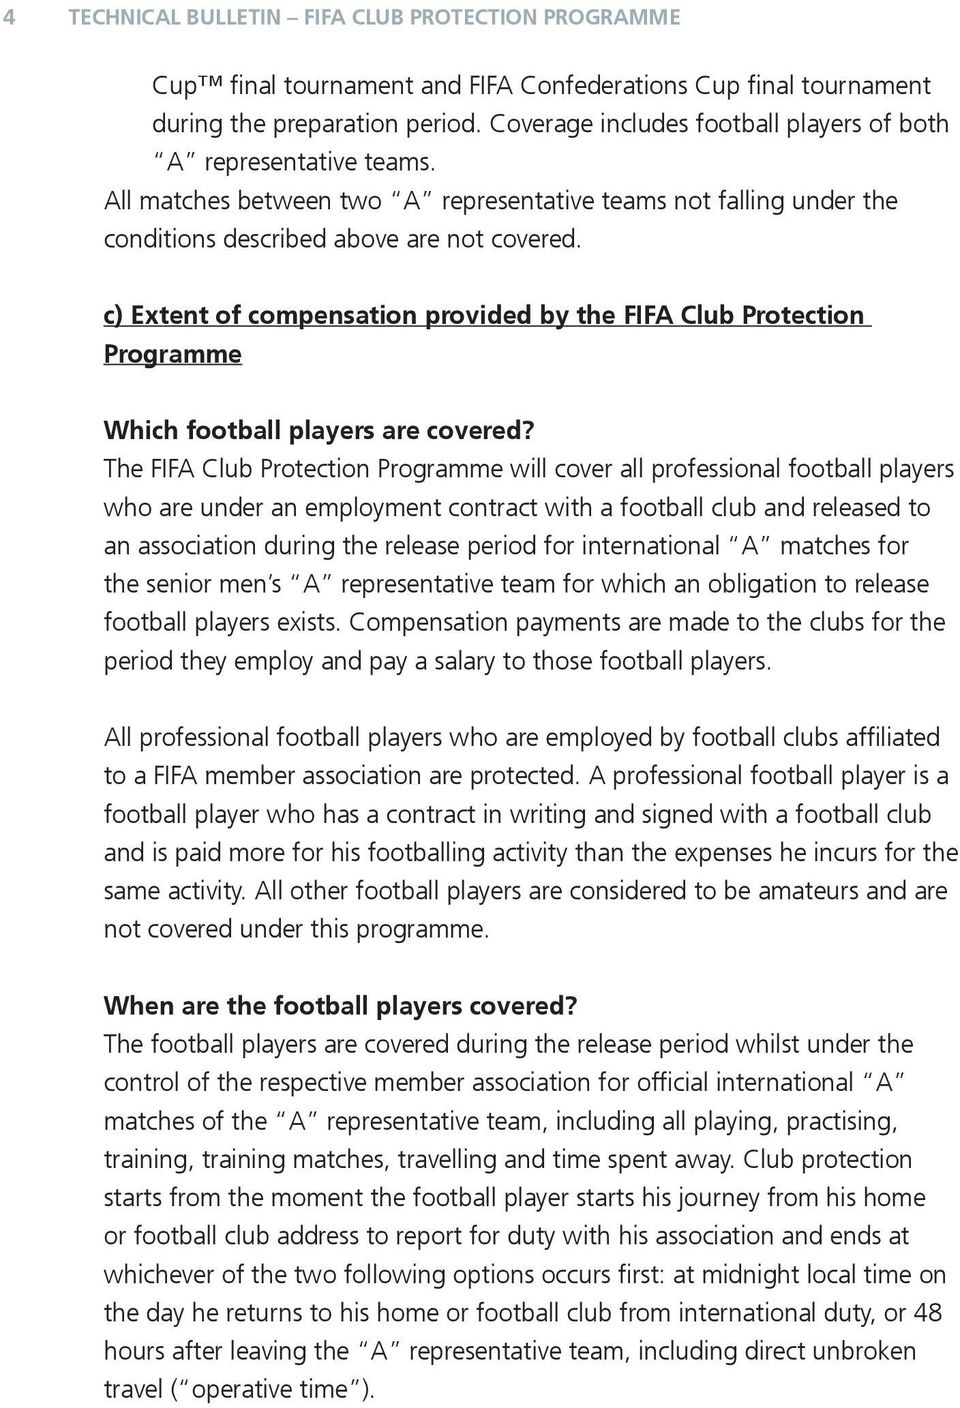 c) Extent compensation provided by FIFA Club Protection Programme Which football players are covered?